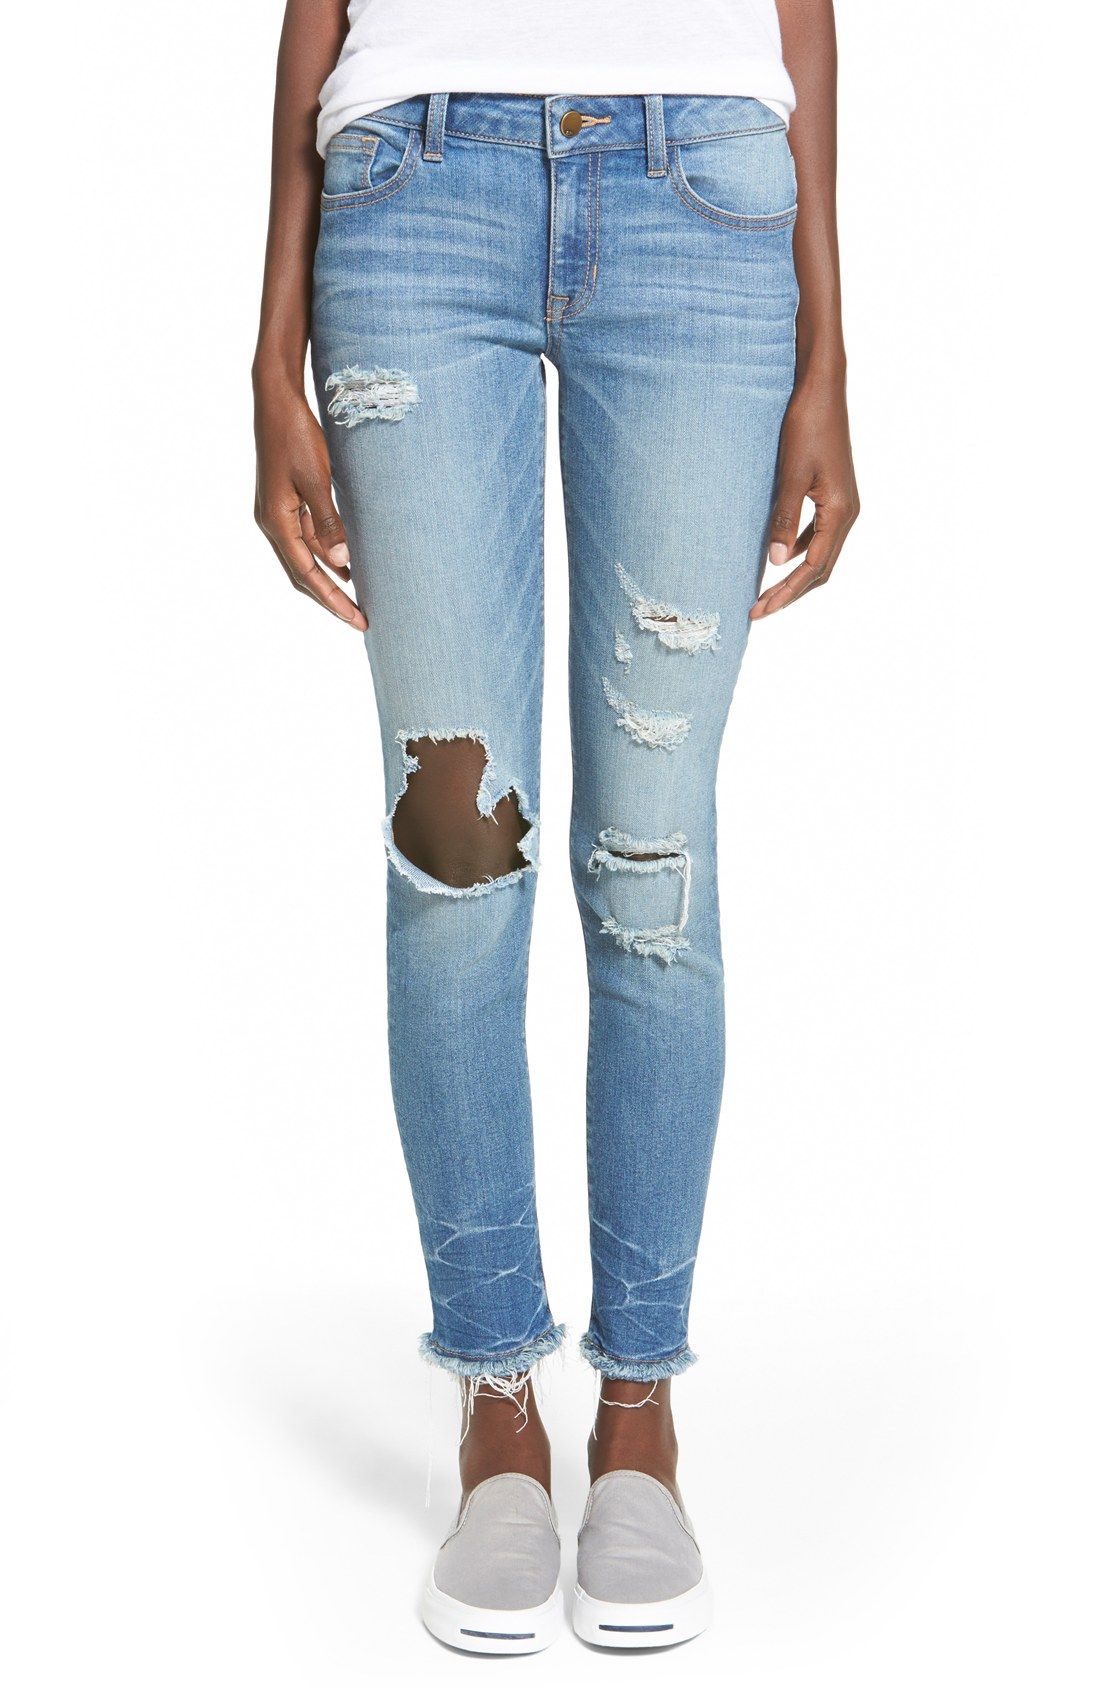 Discover denim for days with the best womens jeans around. Think ripped jeans, black jeans, and boyfriend jeans—they're right here, waiting for you. From jean leggings and skinny jeans to relaxed boyfriend jeans and throwback flared styles, there's a denim match for every outfit. Our entire assortment is available in sizes 23 to 32 in.